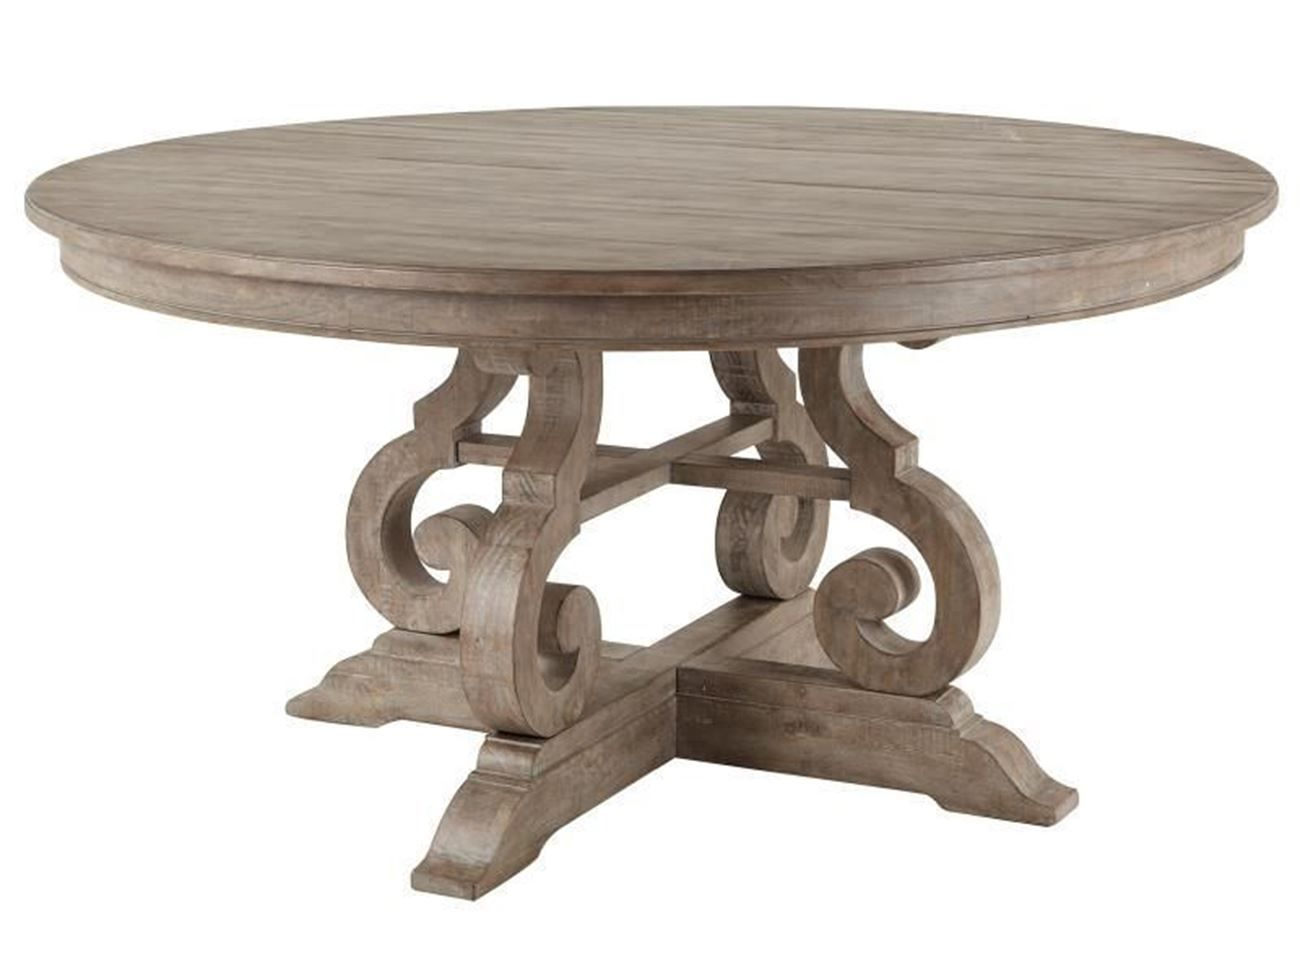 Tinley Park 60 Round Table 60 Round Dining Table Wood Dining